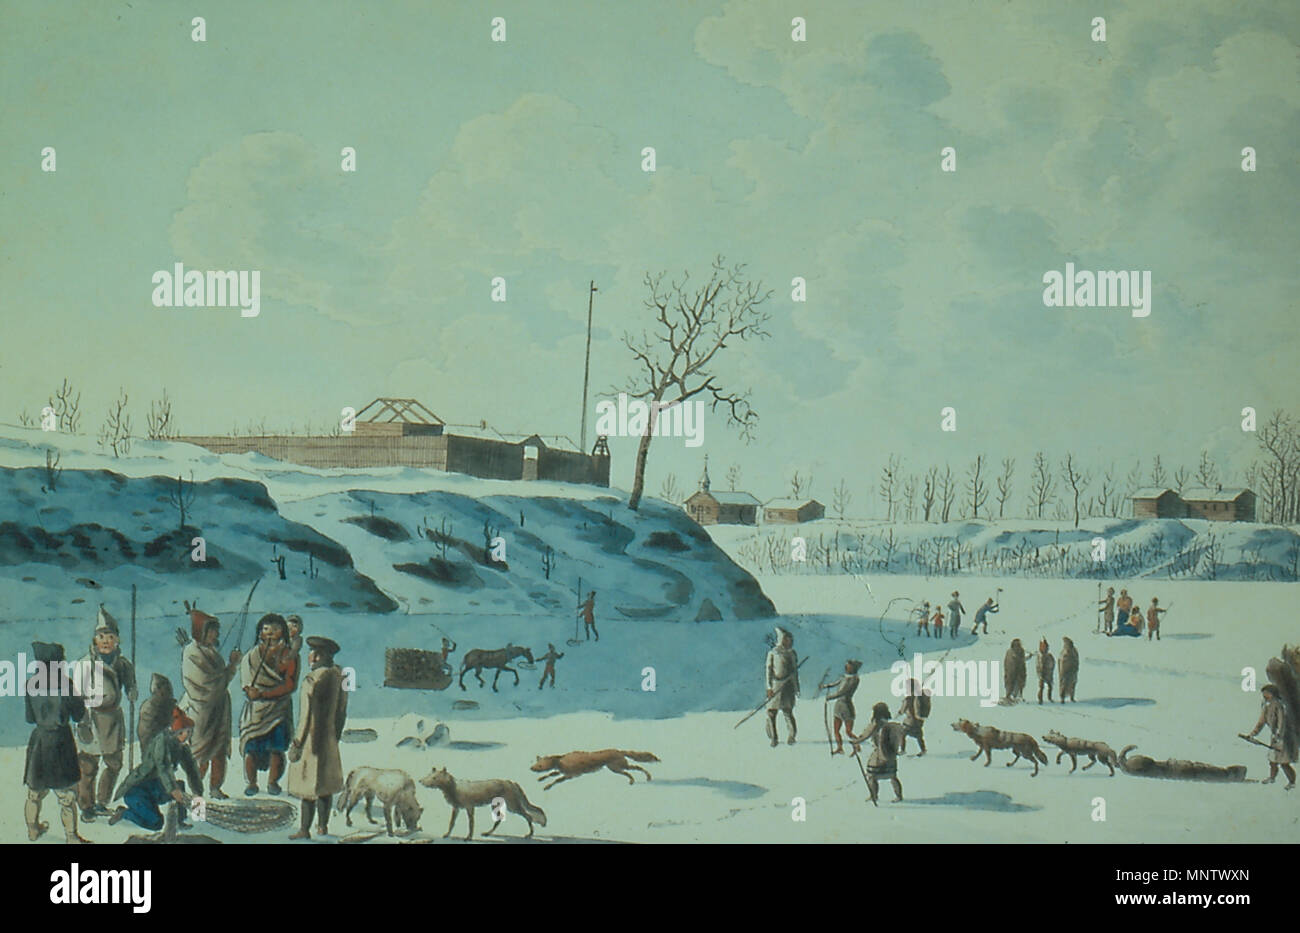 . English: Rindisbacher, Winter Fishing on the Ice of the Assynoibain and Red River, watercolour, 1821. (Note: Peter Rindisbacher's watercolour appears to show Fort Garry (Fort Gibraltar) and an early St. Boniface church at the forks of the frozen Red and Assiniboine rivers) . 1821. Peter Rindisbacher 1062 Rindisbacher fishing 1821 large (1) - Stock Image